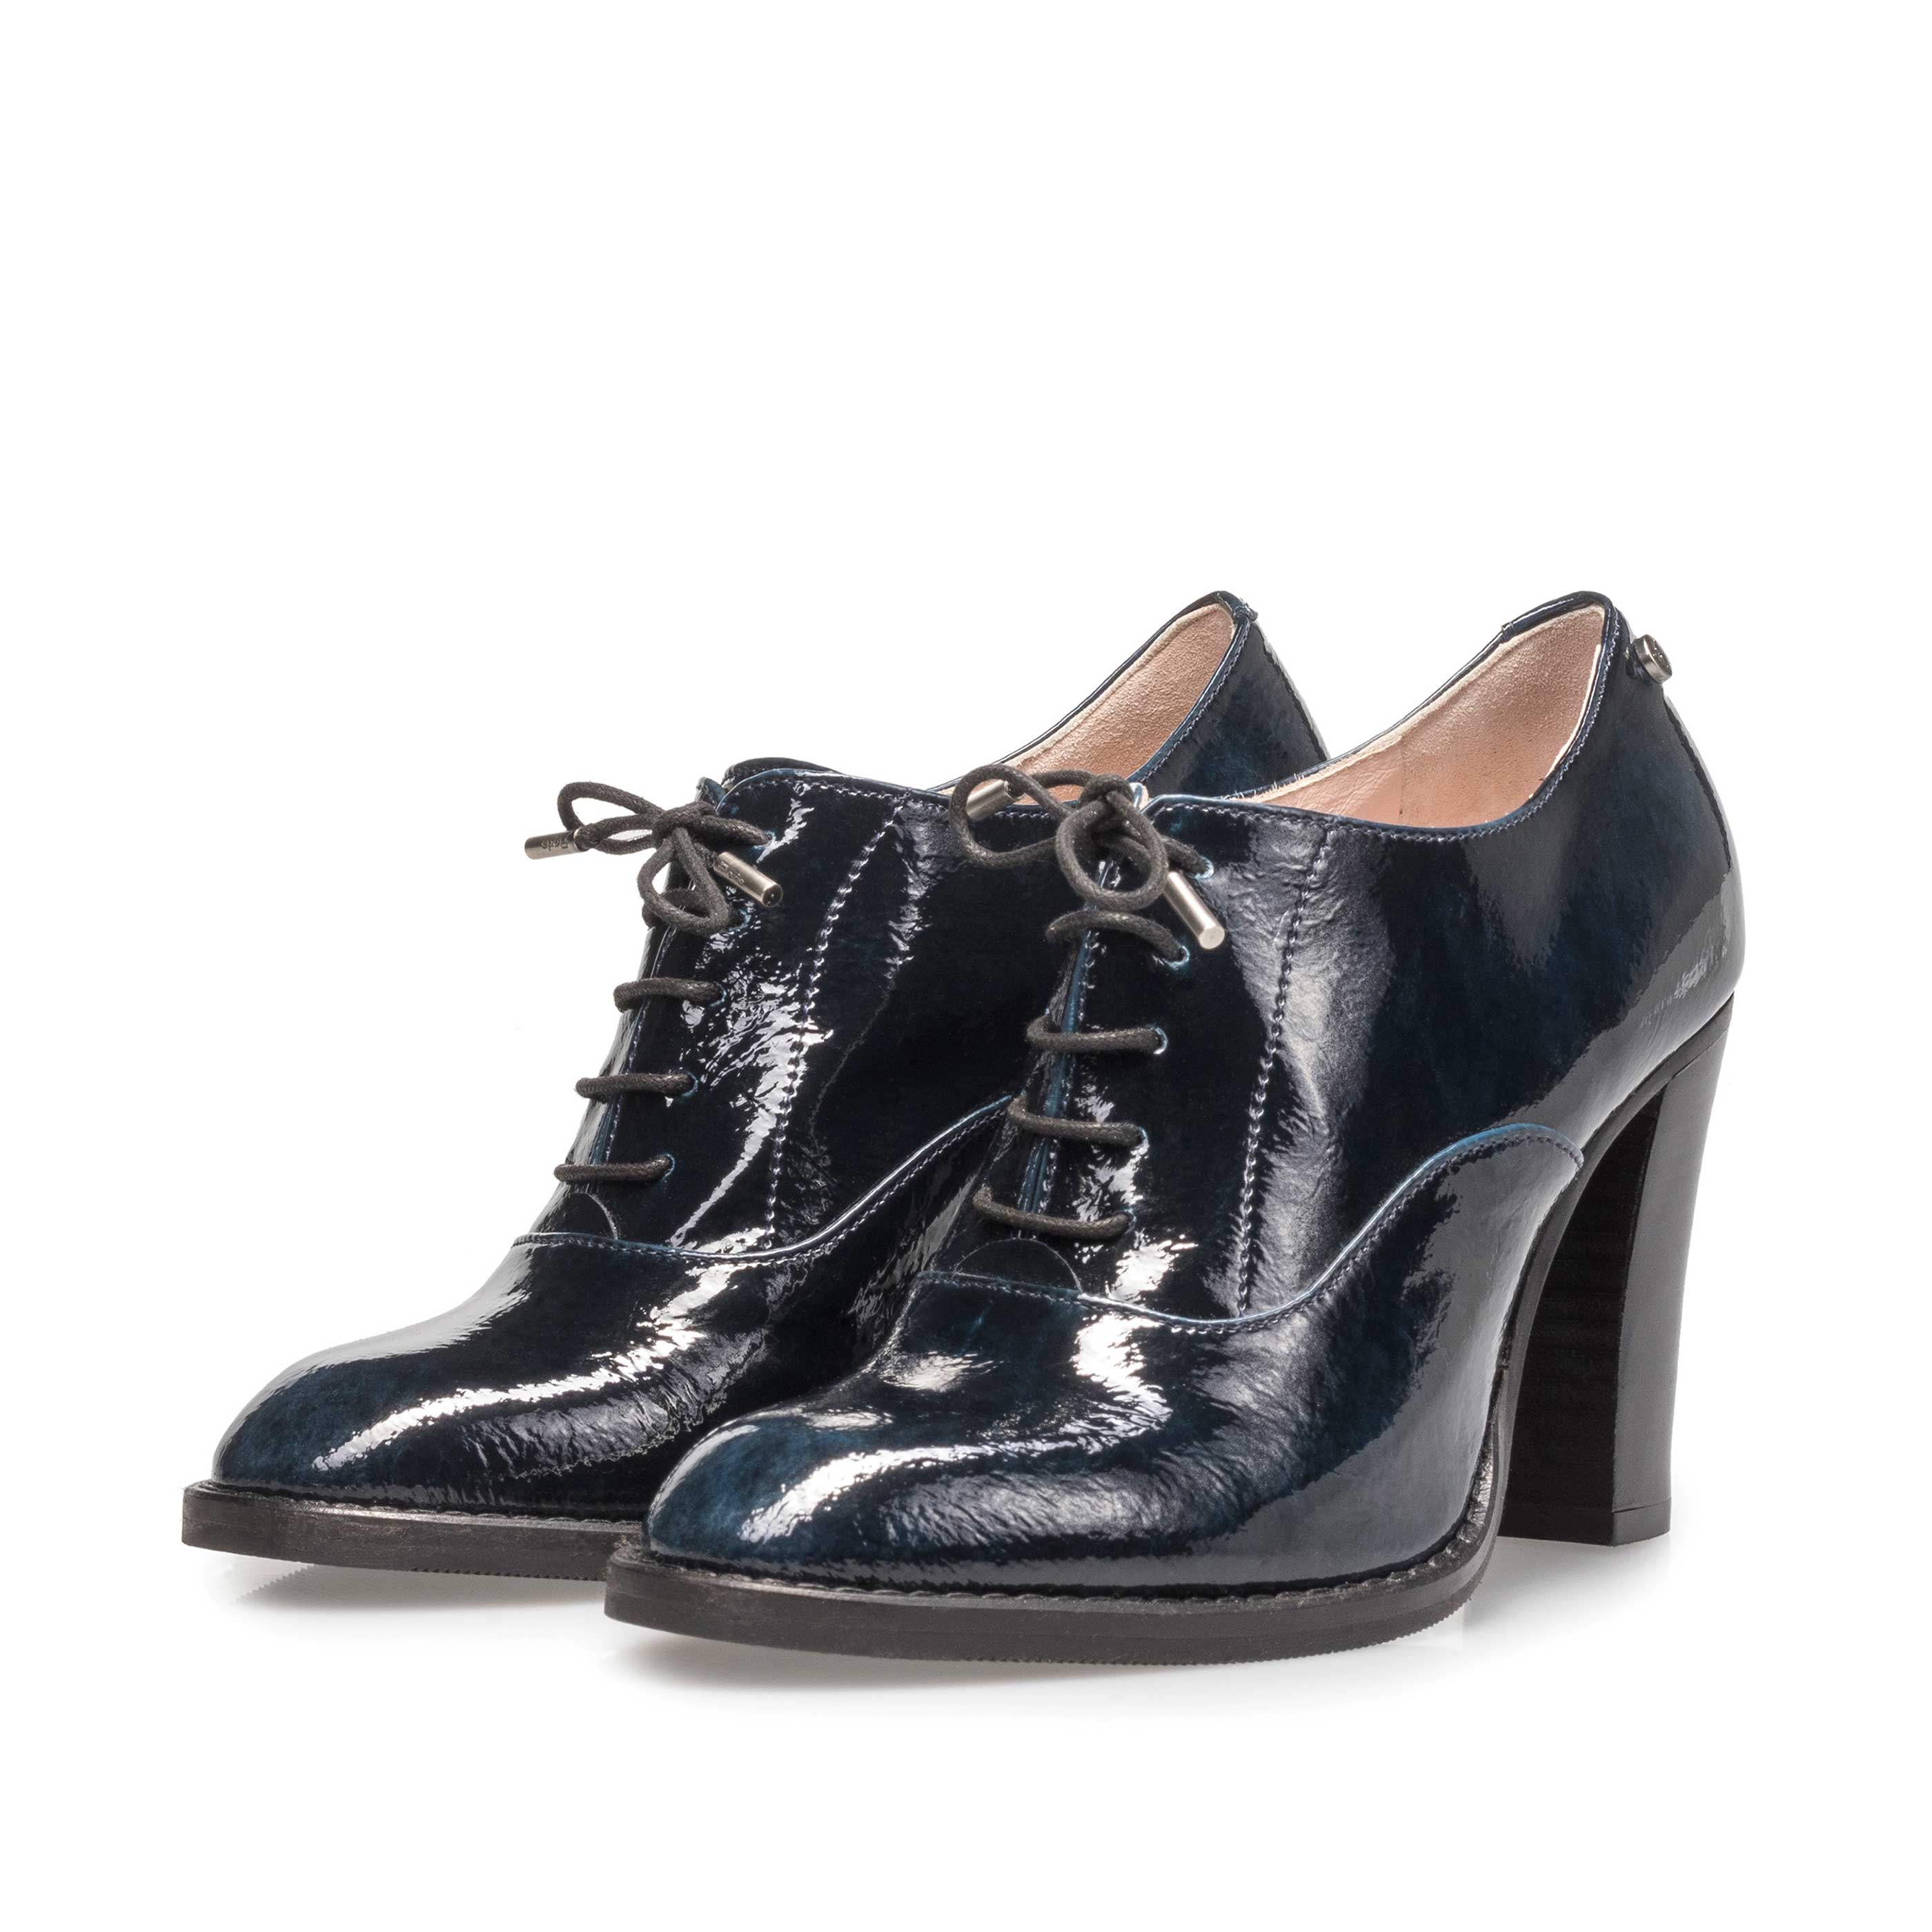 85816/01 - Blue patent leather heeled derby